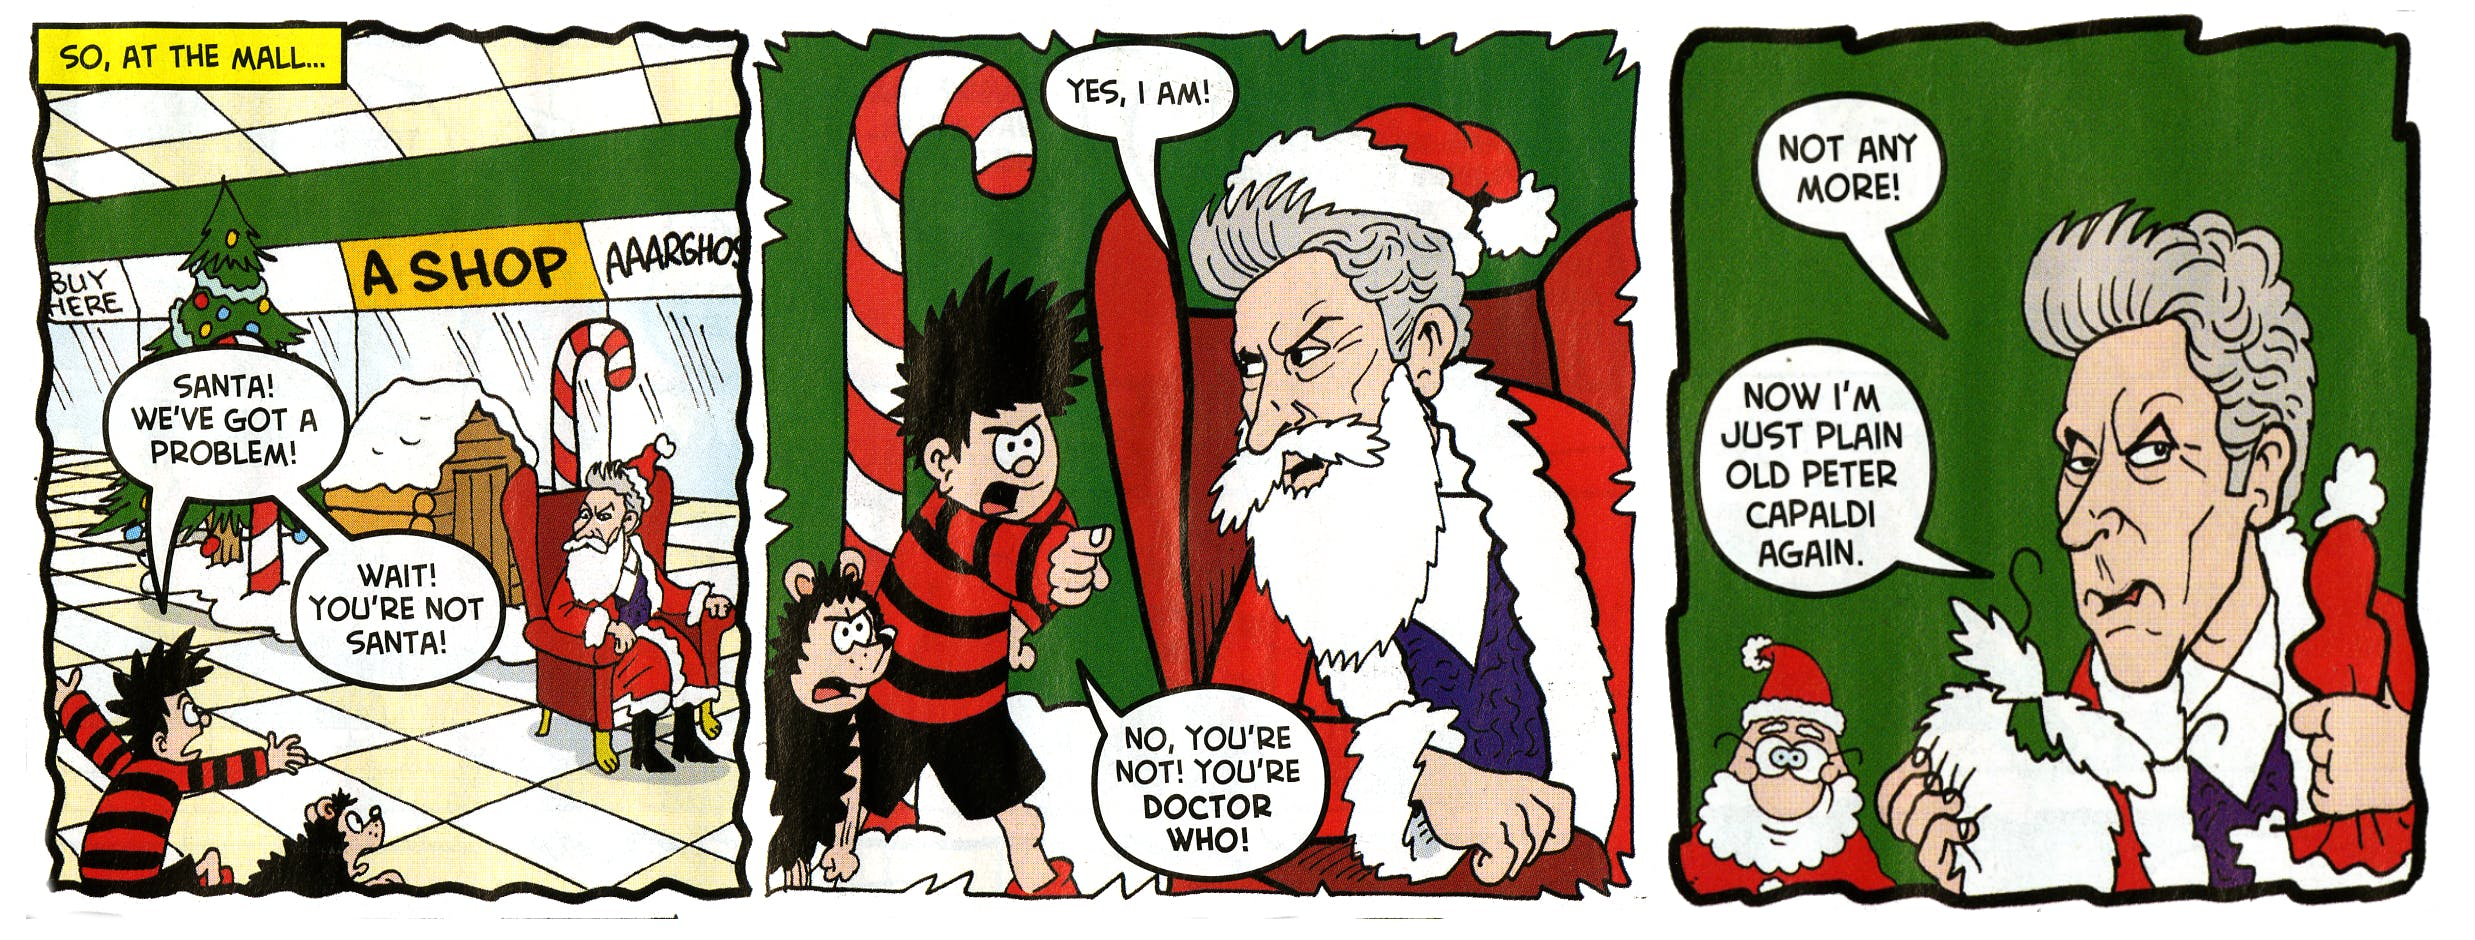 Doctor Who star Peter Capaldi featured in a Beano Christmas special, published on December 9, 2017